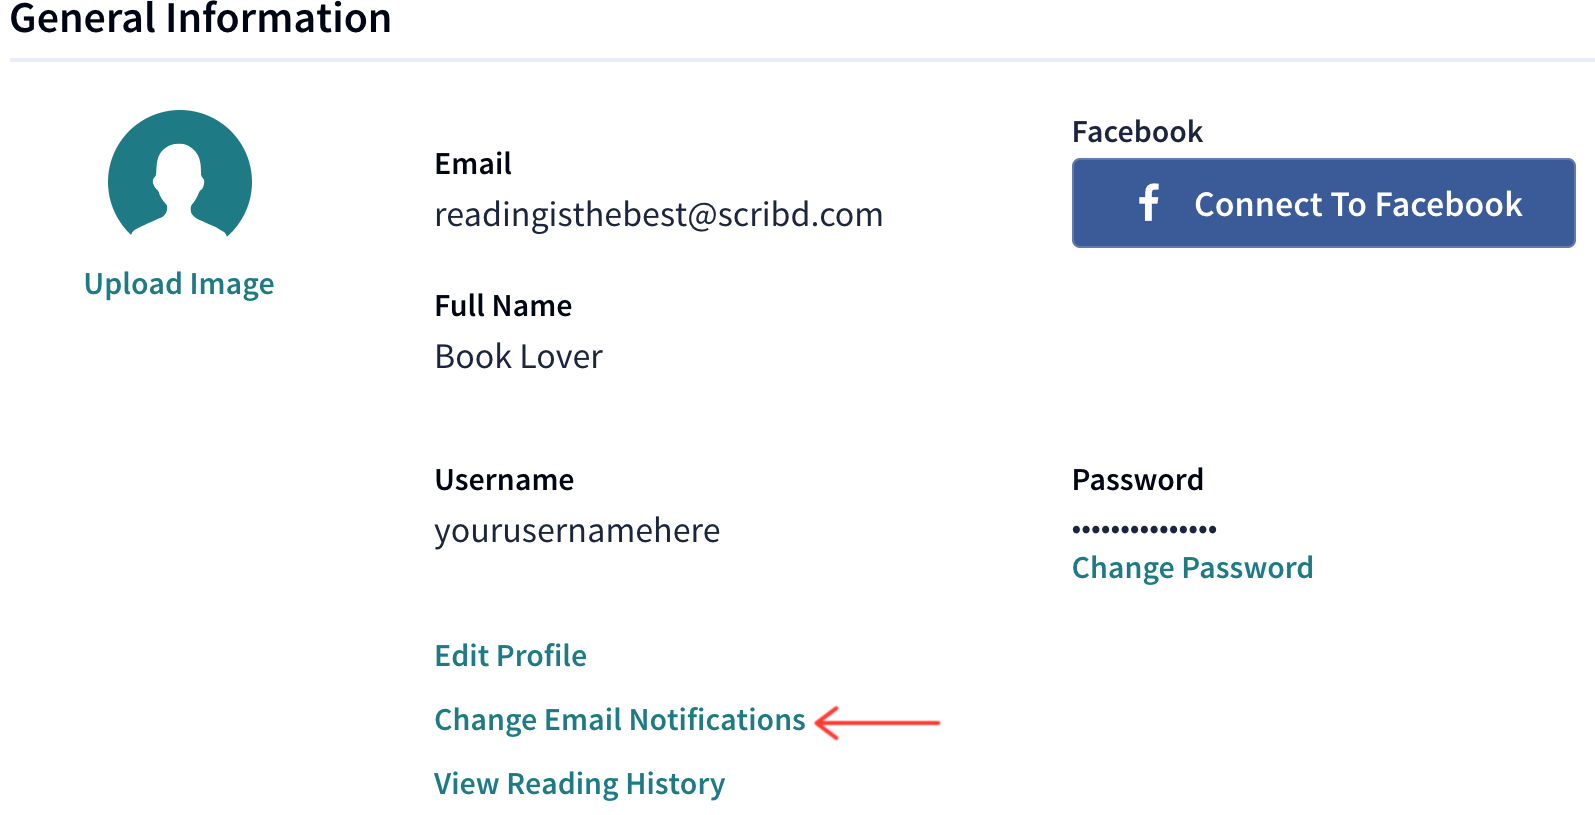 Unsubscribing_from_newsletters_-_Change_email_notifications.png